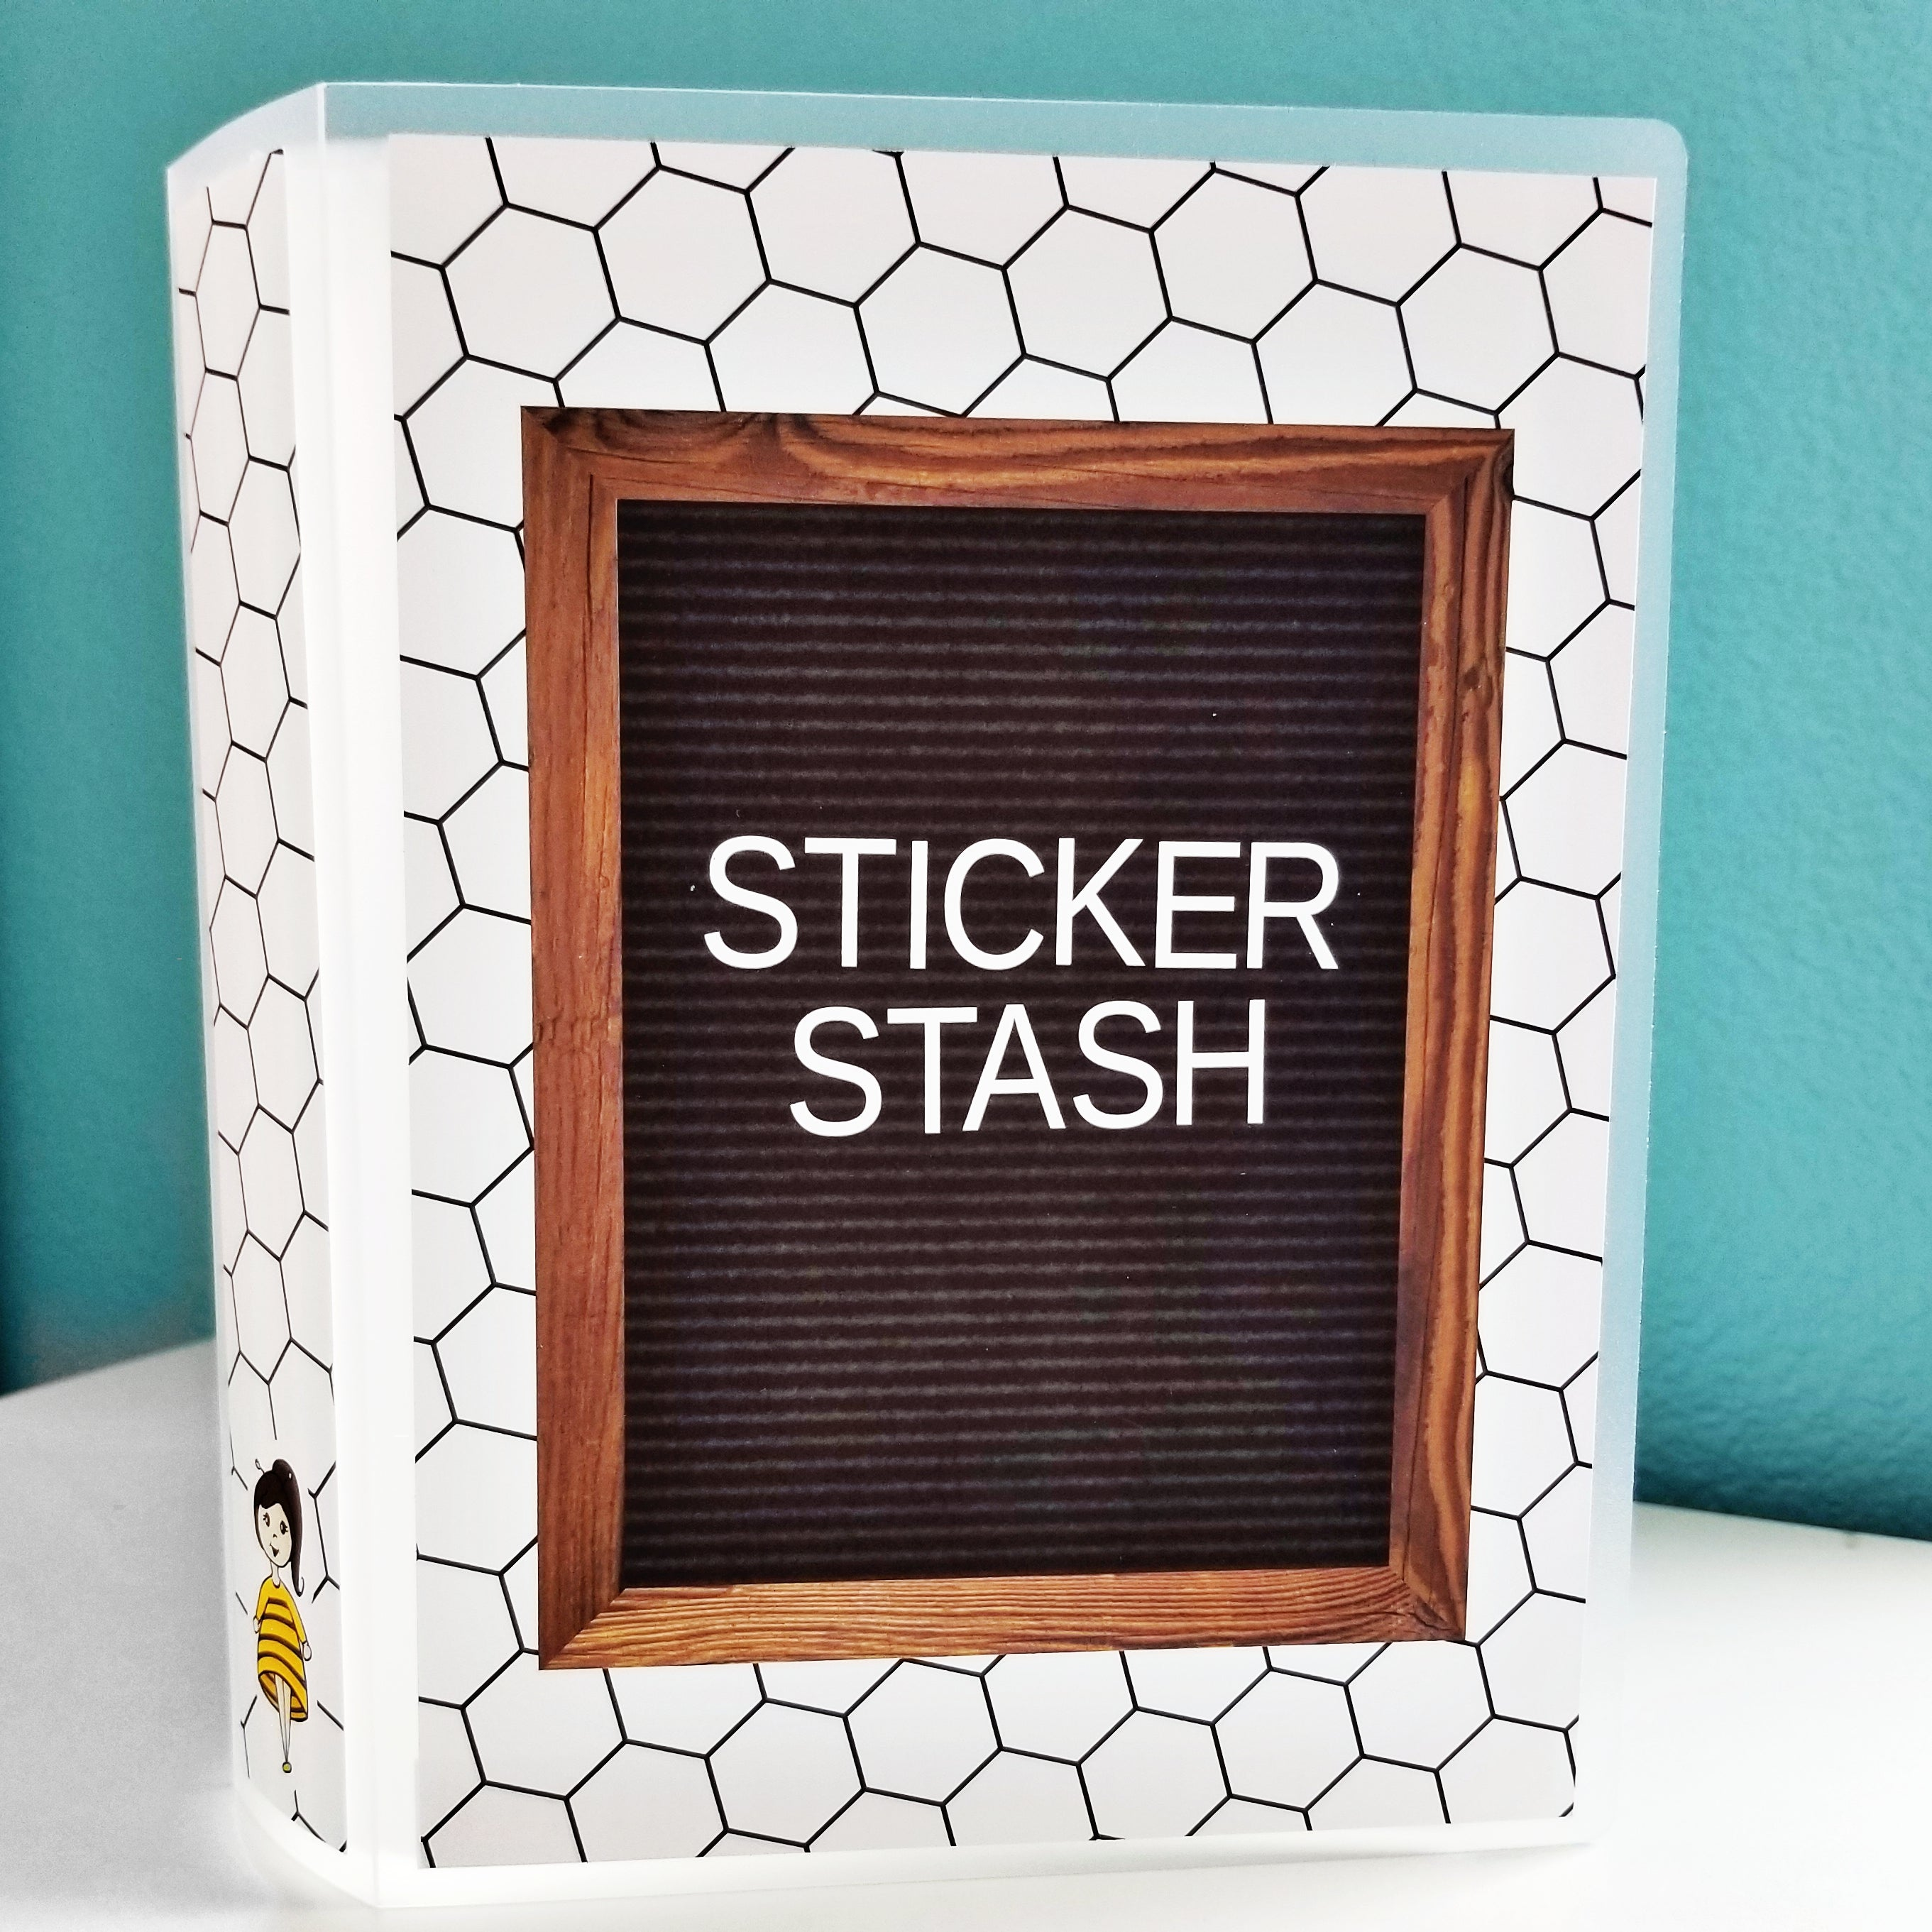 STICKER STASH Album